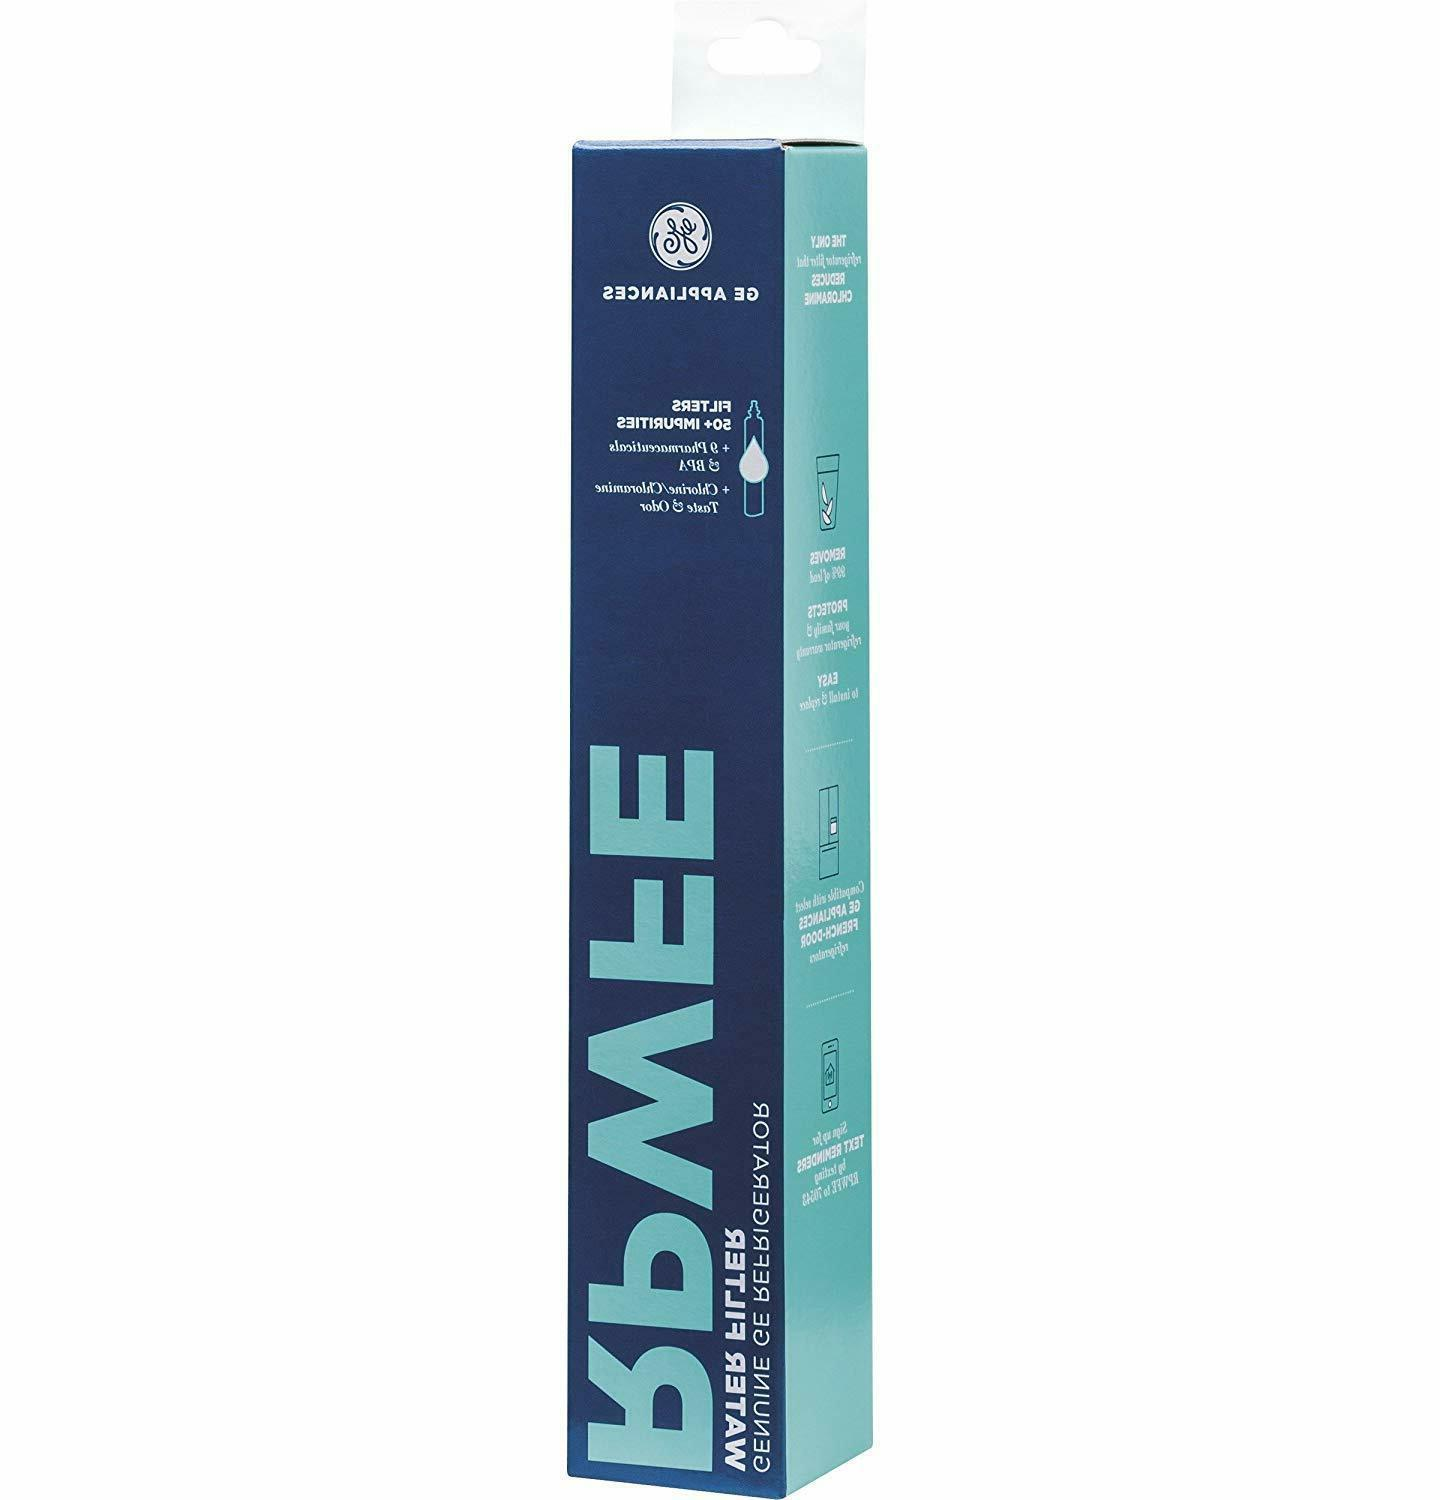 Genuine Authentic Refrigerator Water Filter Brand New Sealed